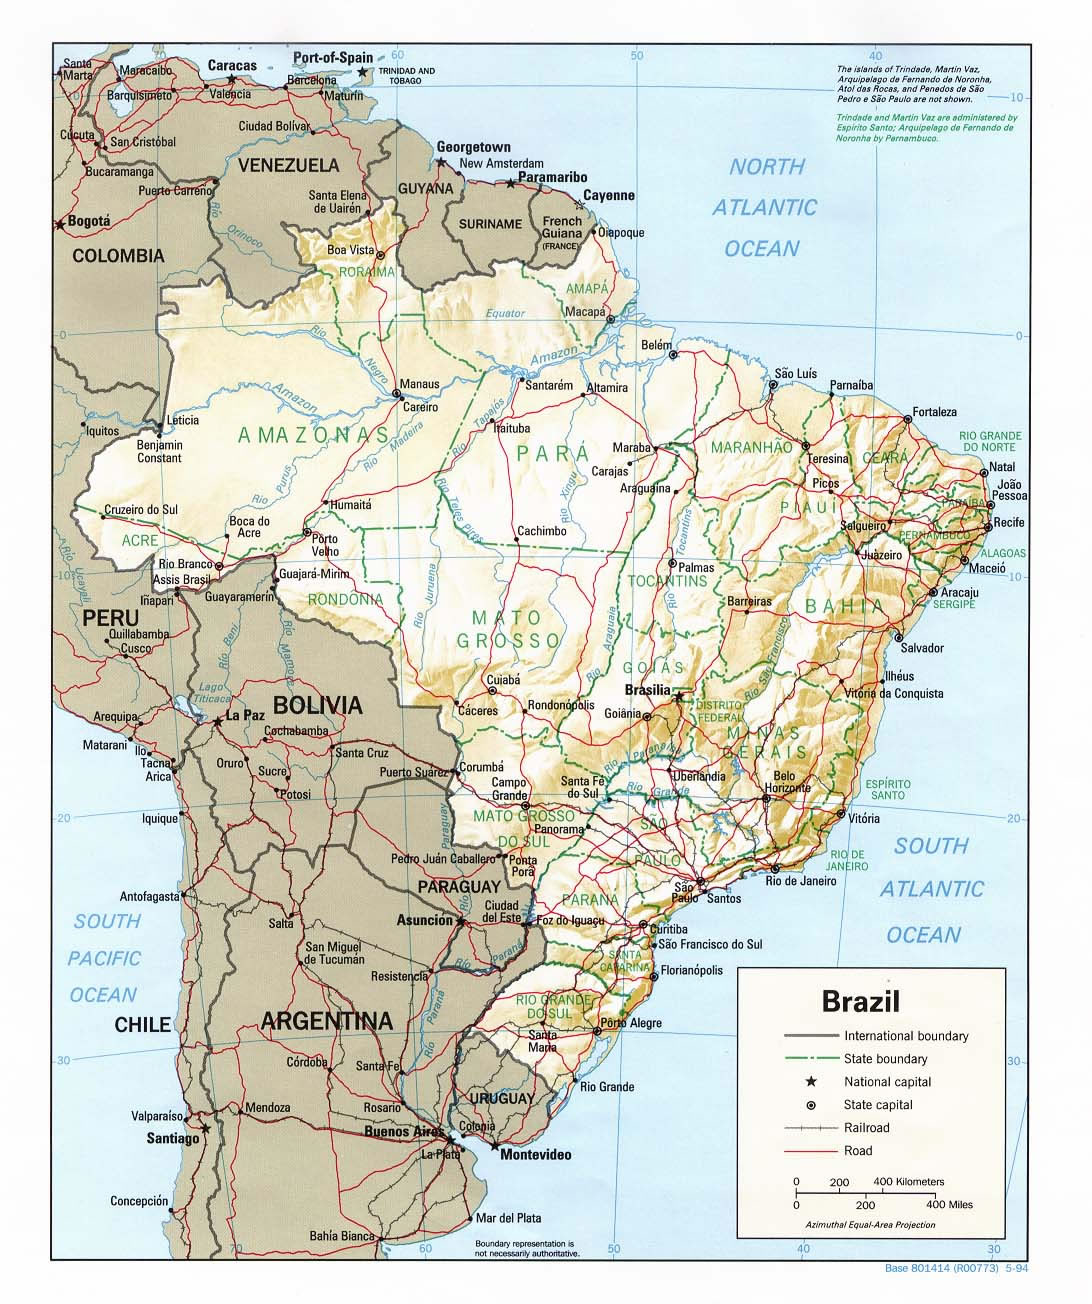 Brazil Map of Amazon Amazon Columbia to Brazil 1 1